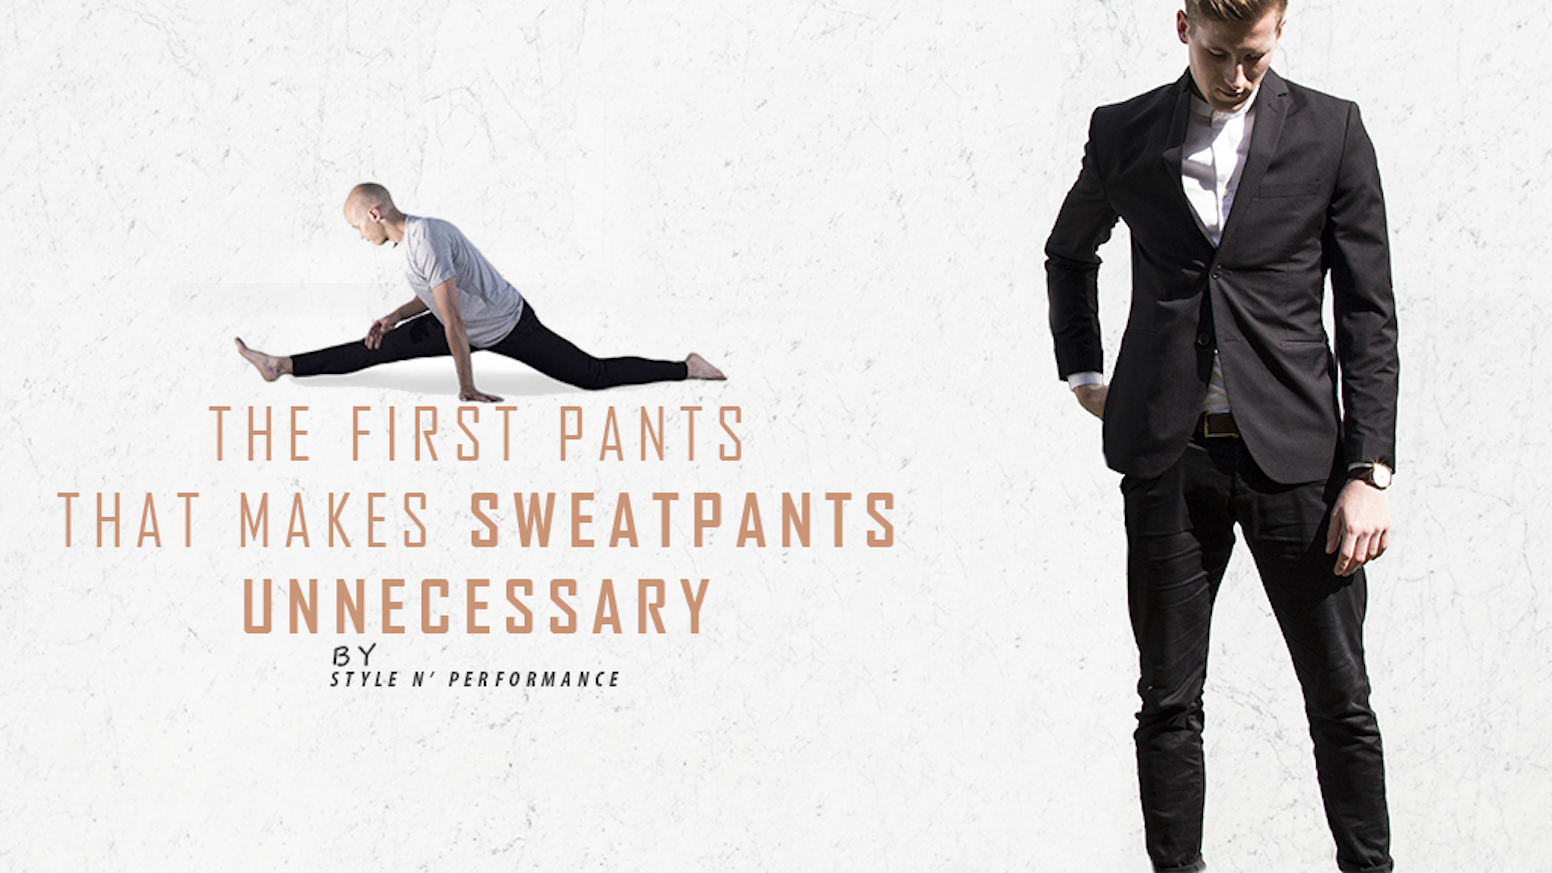 Imagine feeling like wearing your best sweatpants everywhere you go and looking stylish at the same time.